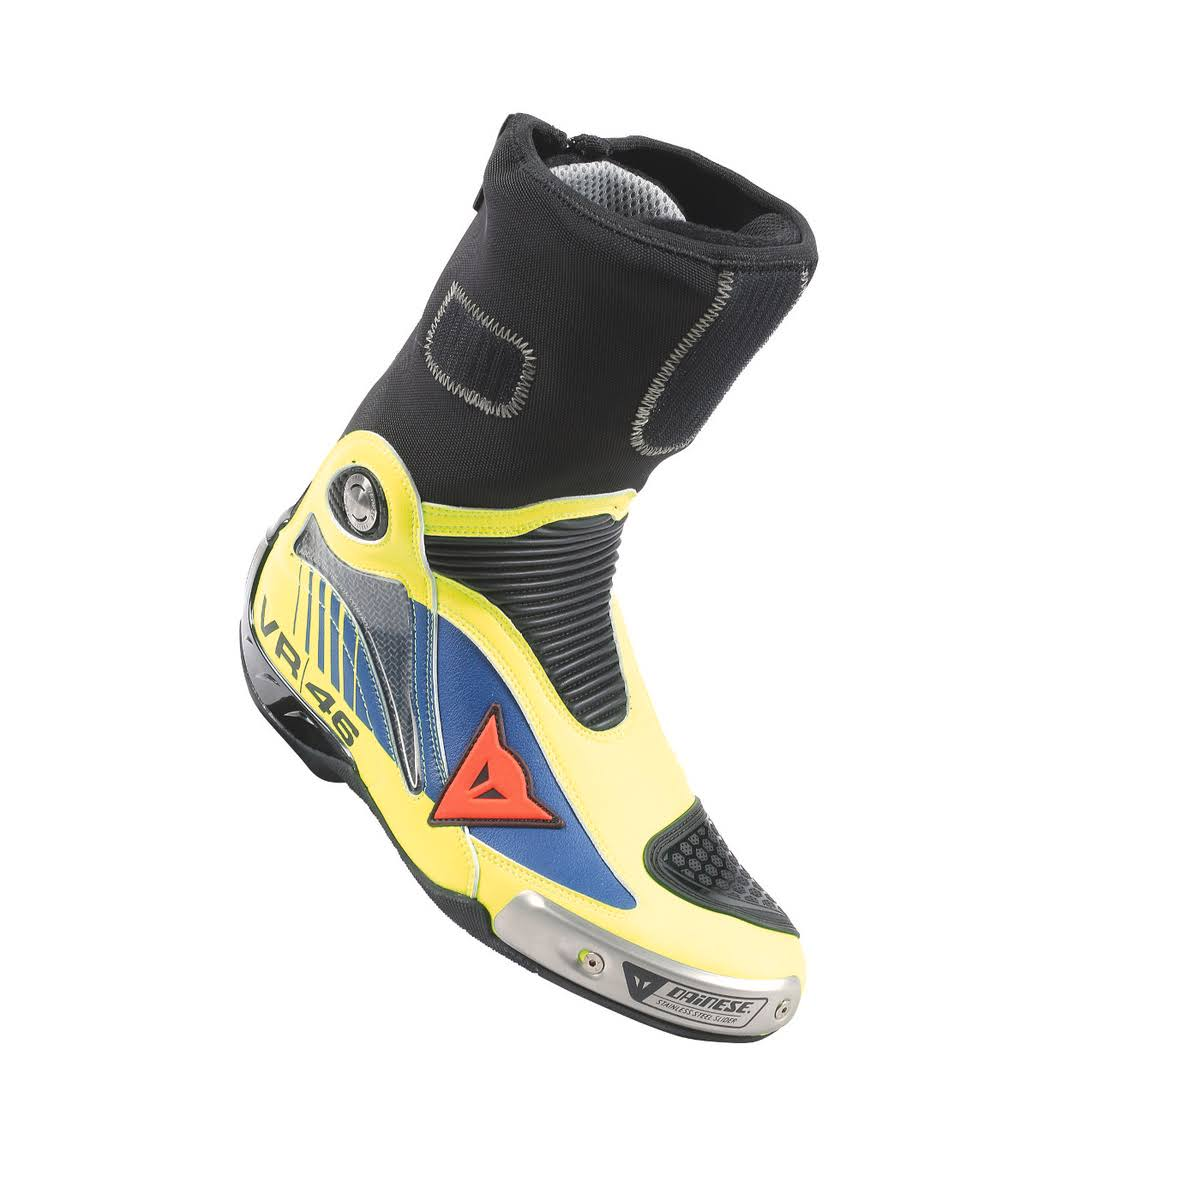 Replica Dainese D1 Axial In Boots R Pro hrtsQxCd